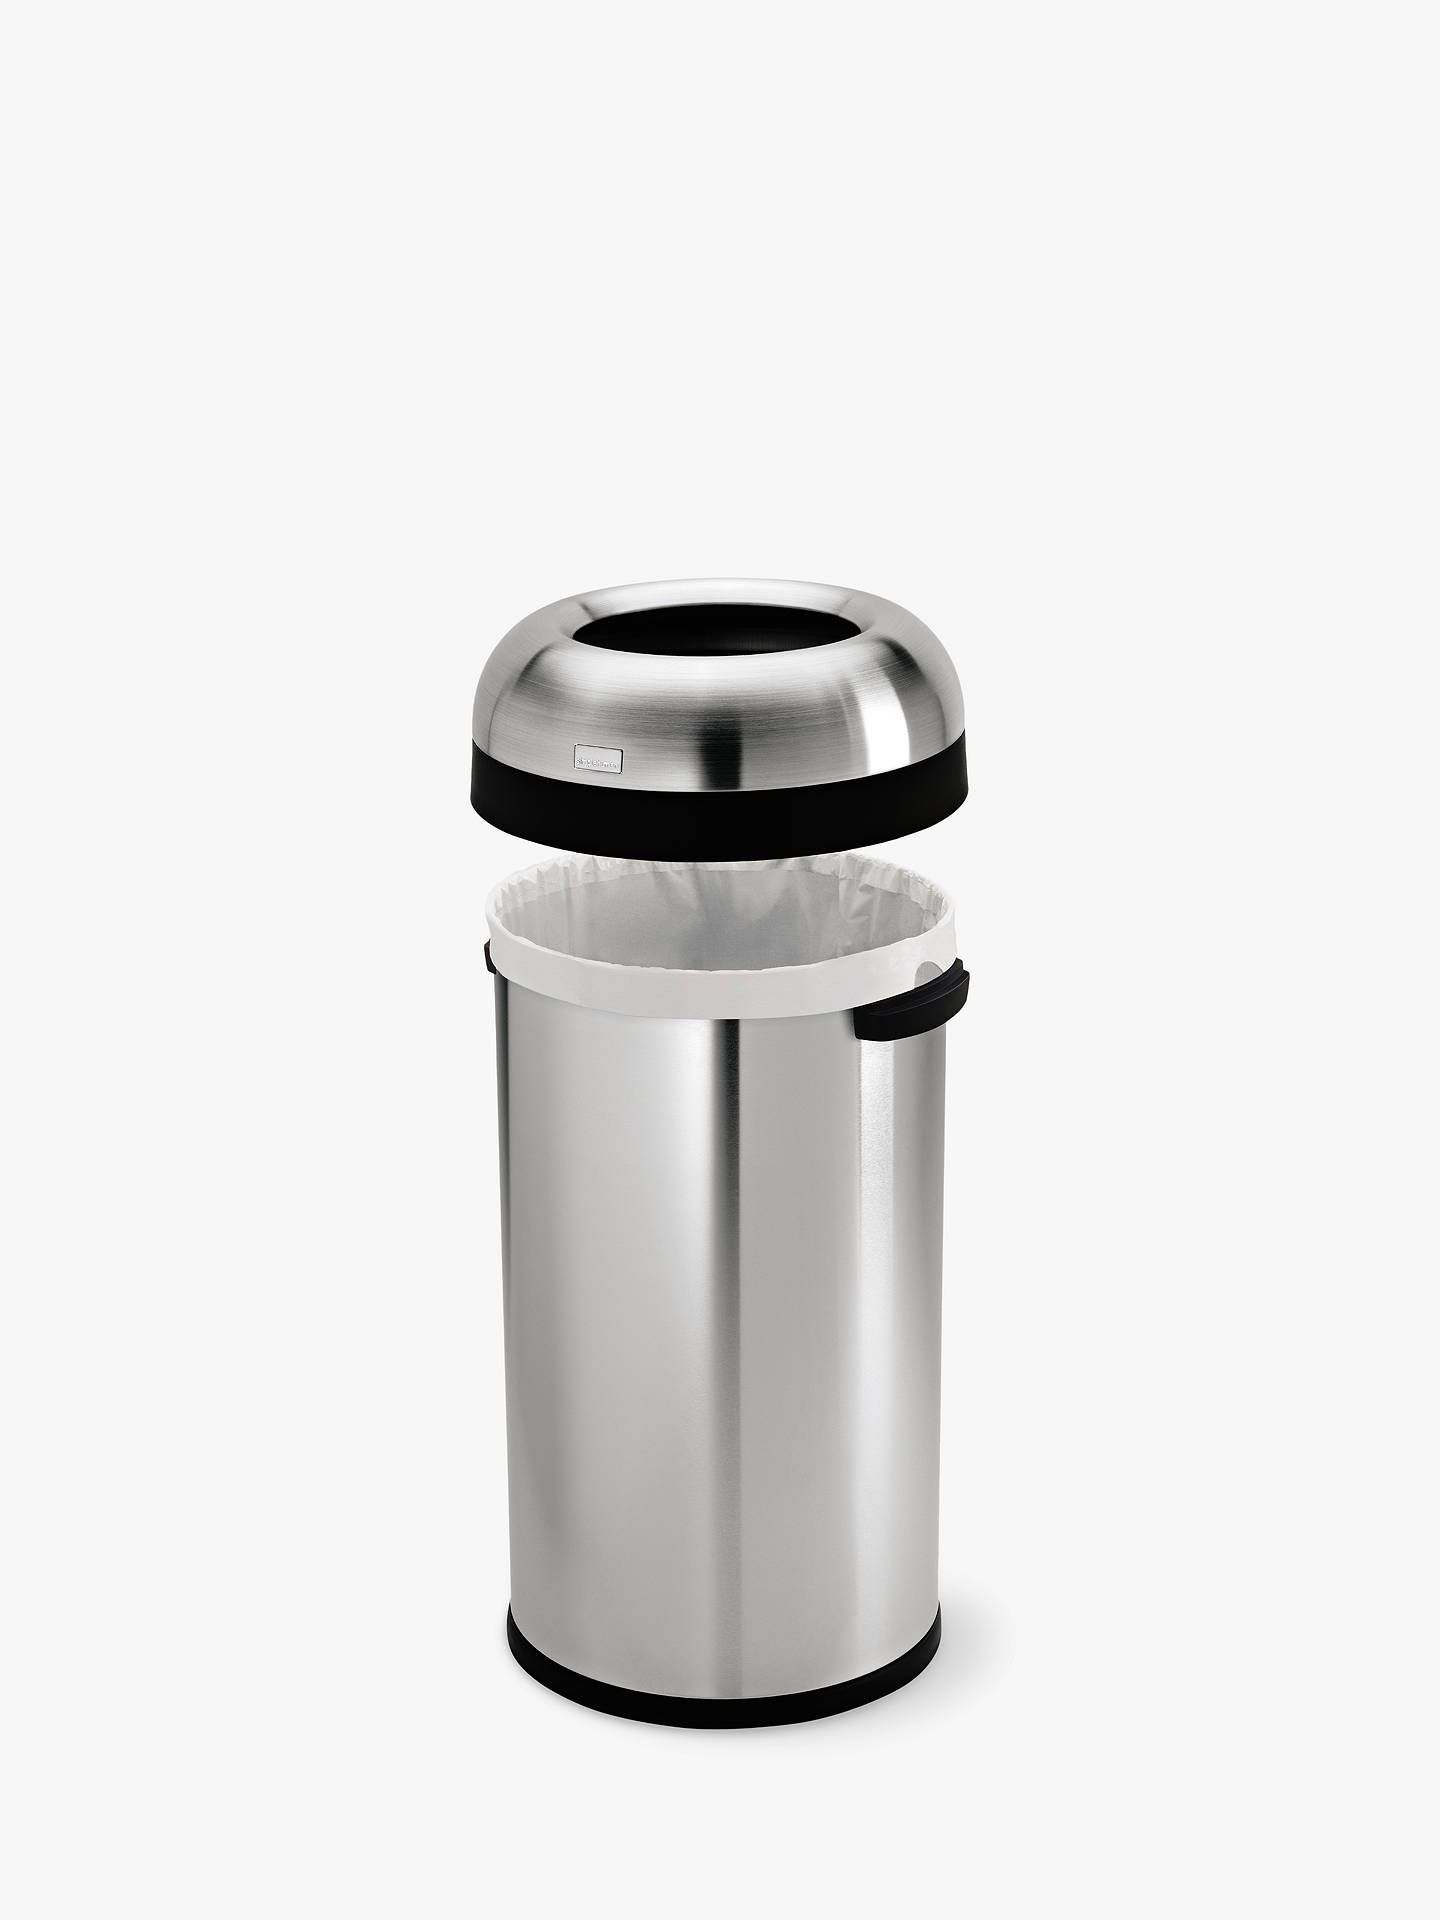 Buysimplehuman Stainless Steel Open Bin, 60L Silver Online at johnlewis.com